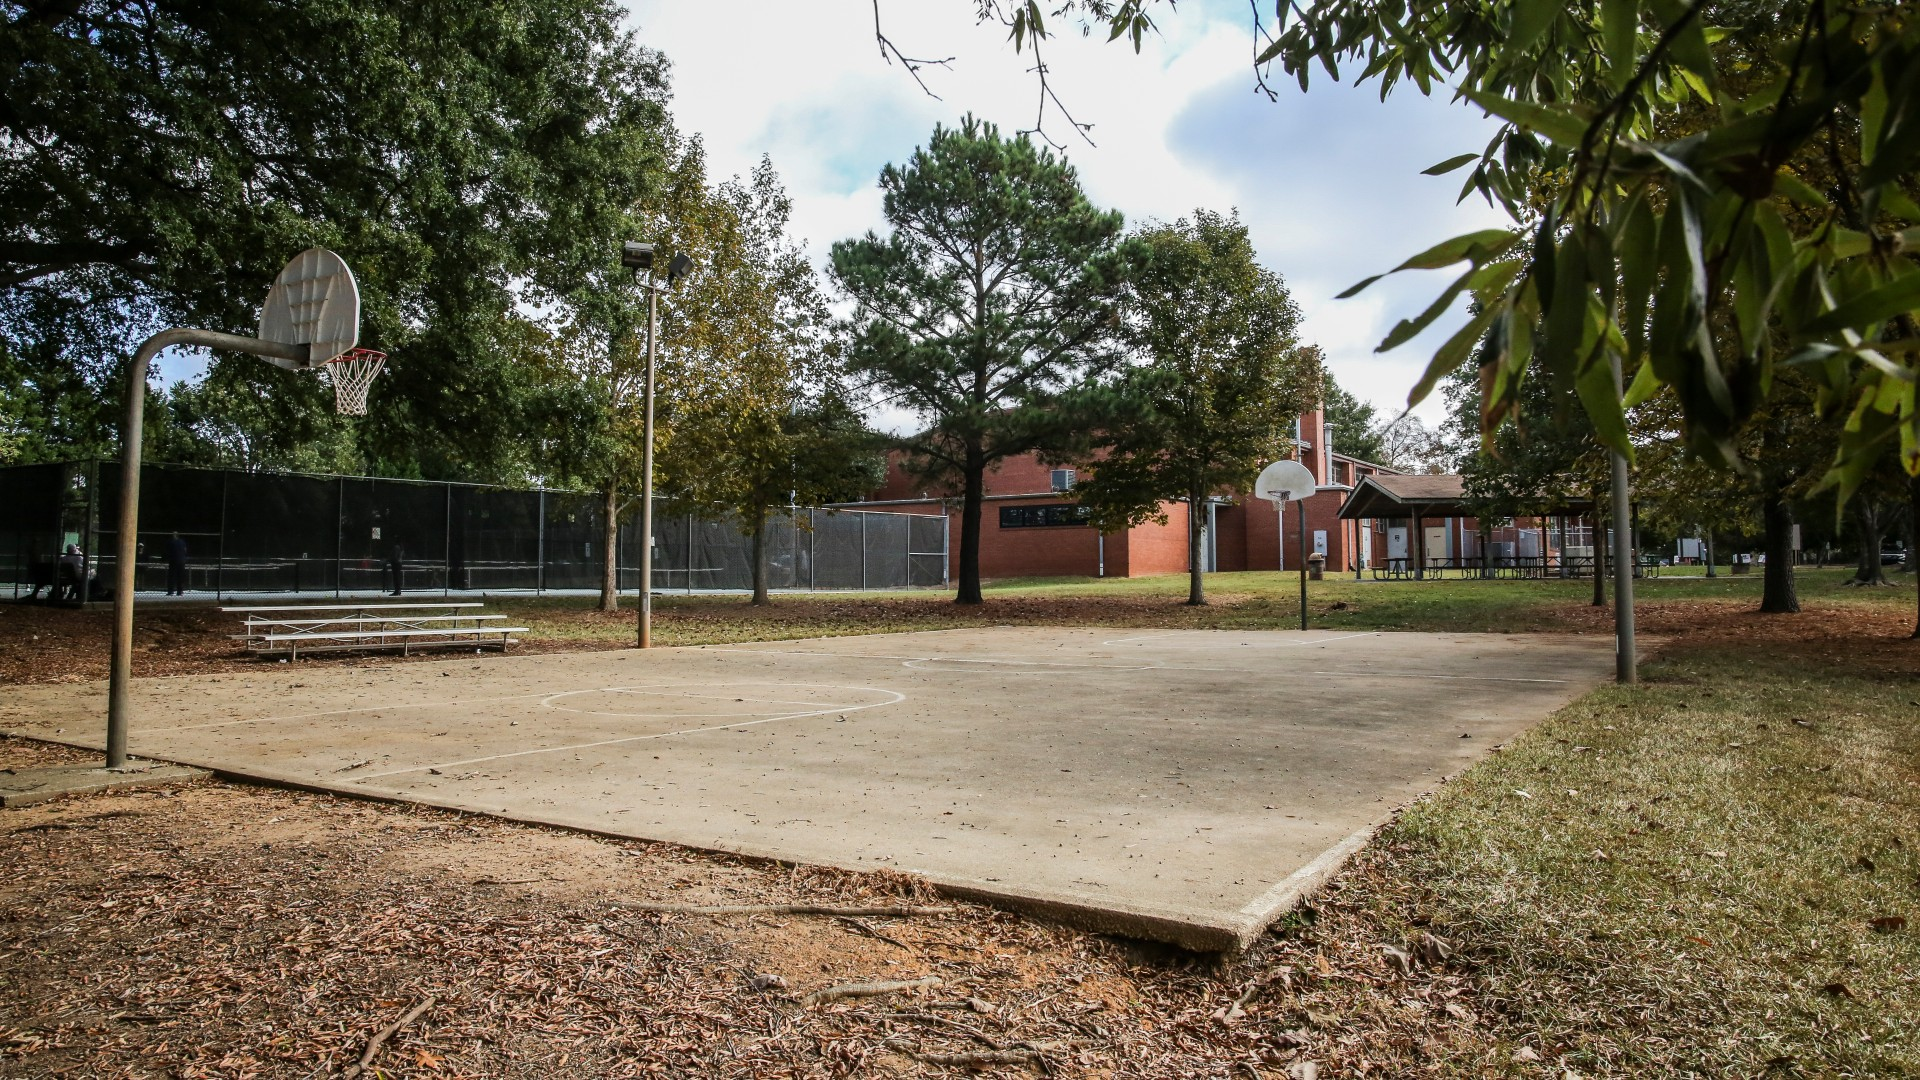 Outdoor basketball court at Method Road Park shows concrete court and two basketball hoops.